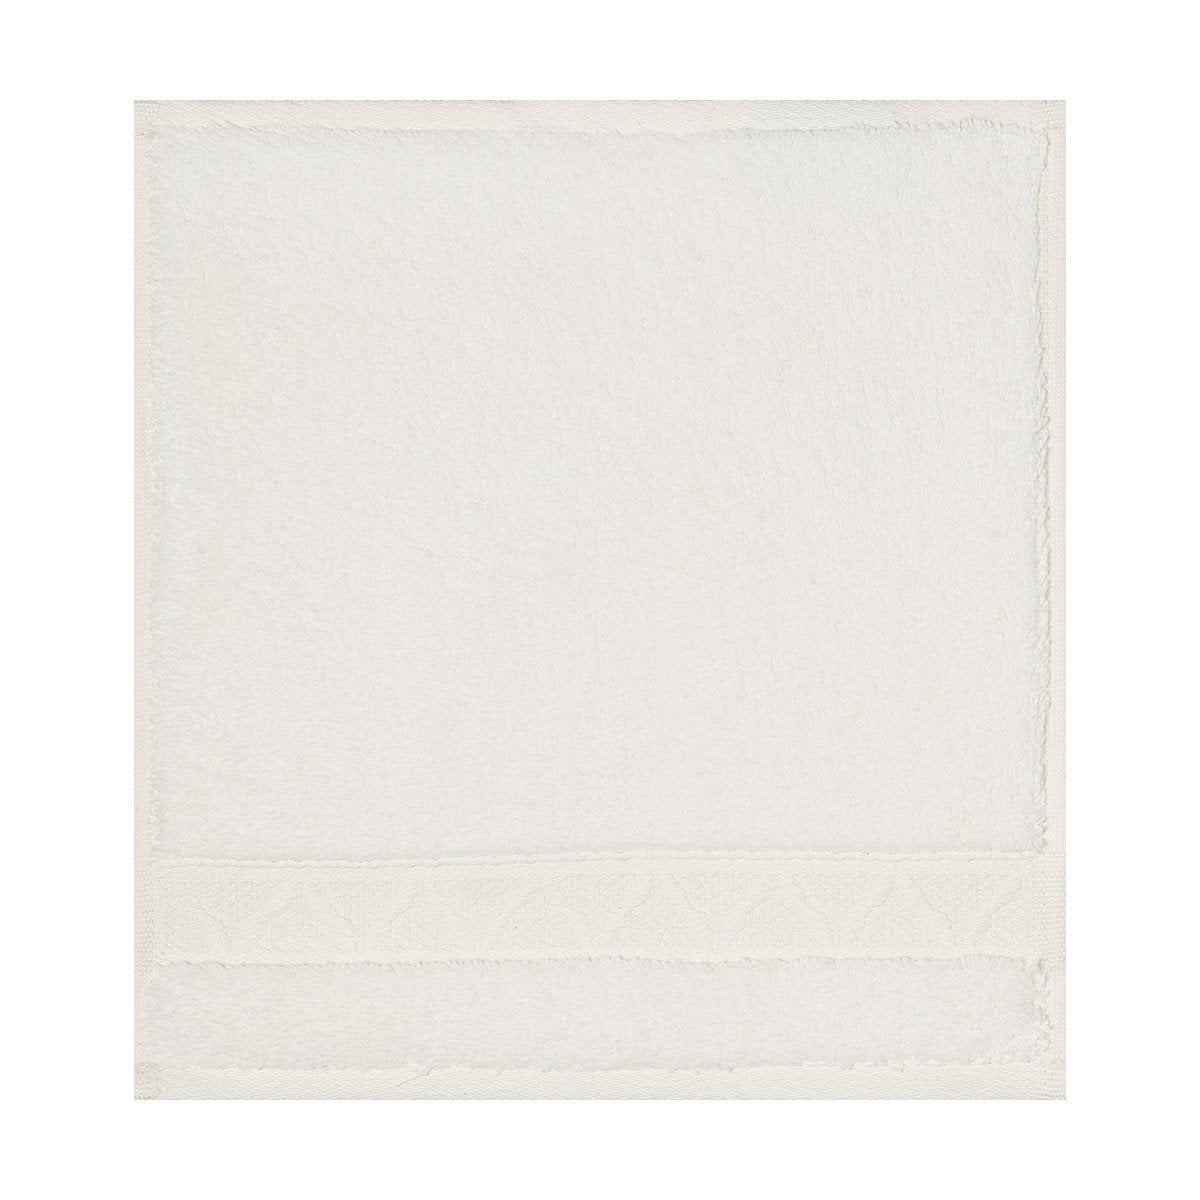 Le Jacquard Français | Caresse Ivory Bath Collection | Fig Linens - Washcloth